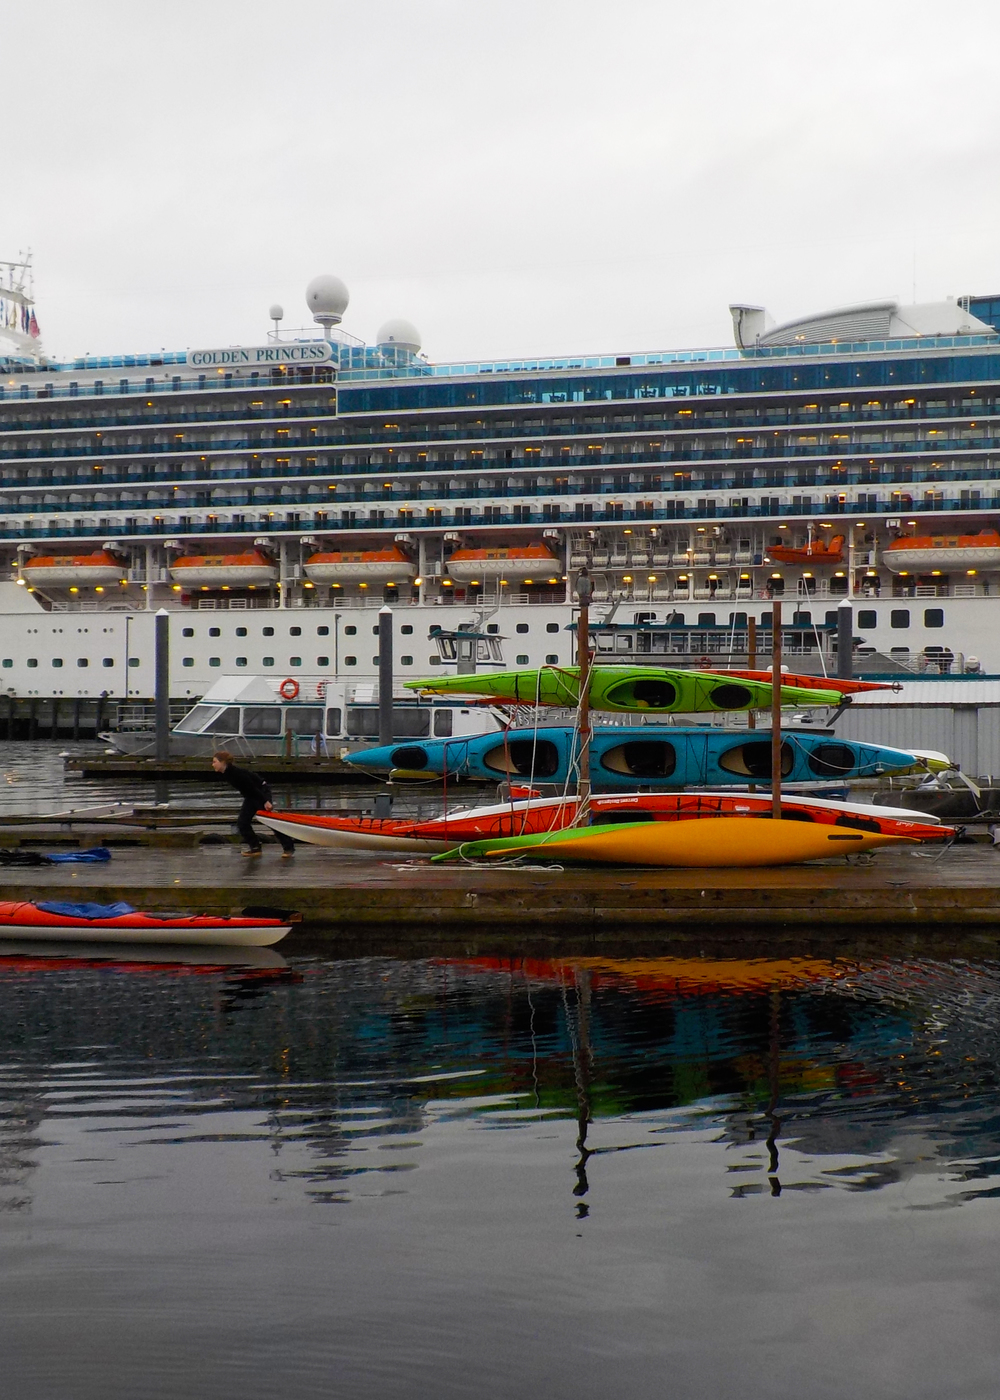 Southeast Sea Kayaks is located right in the heart of downtown next to cruise ship berth 1. We meet all our guests at the Liquid Sunshine Gauge at berth 2 and walk a few minutes to our floating office.